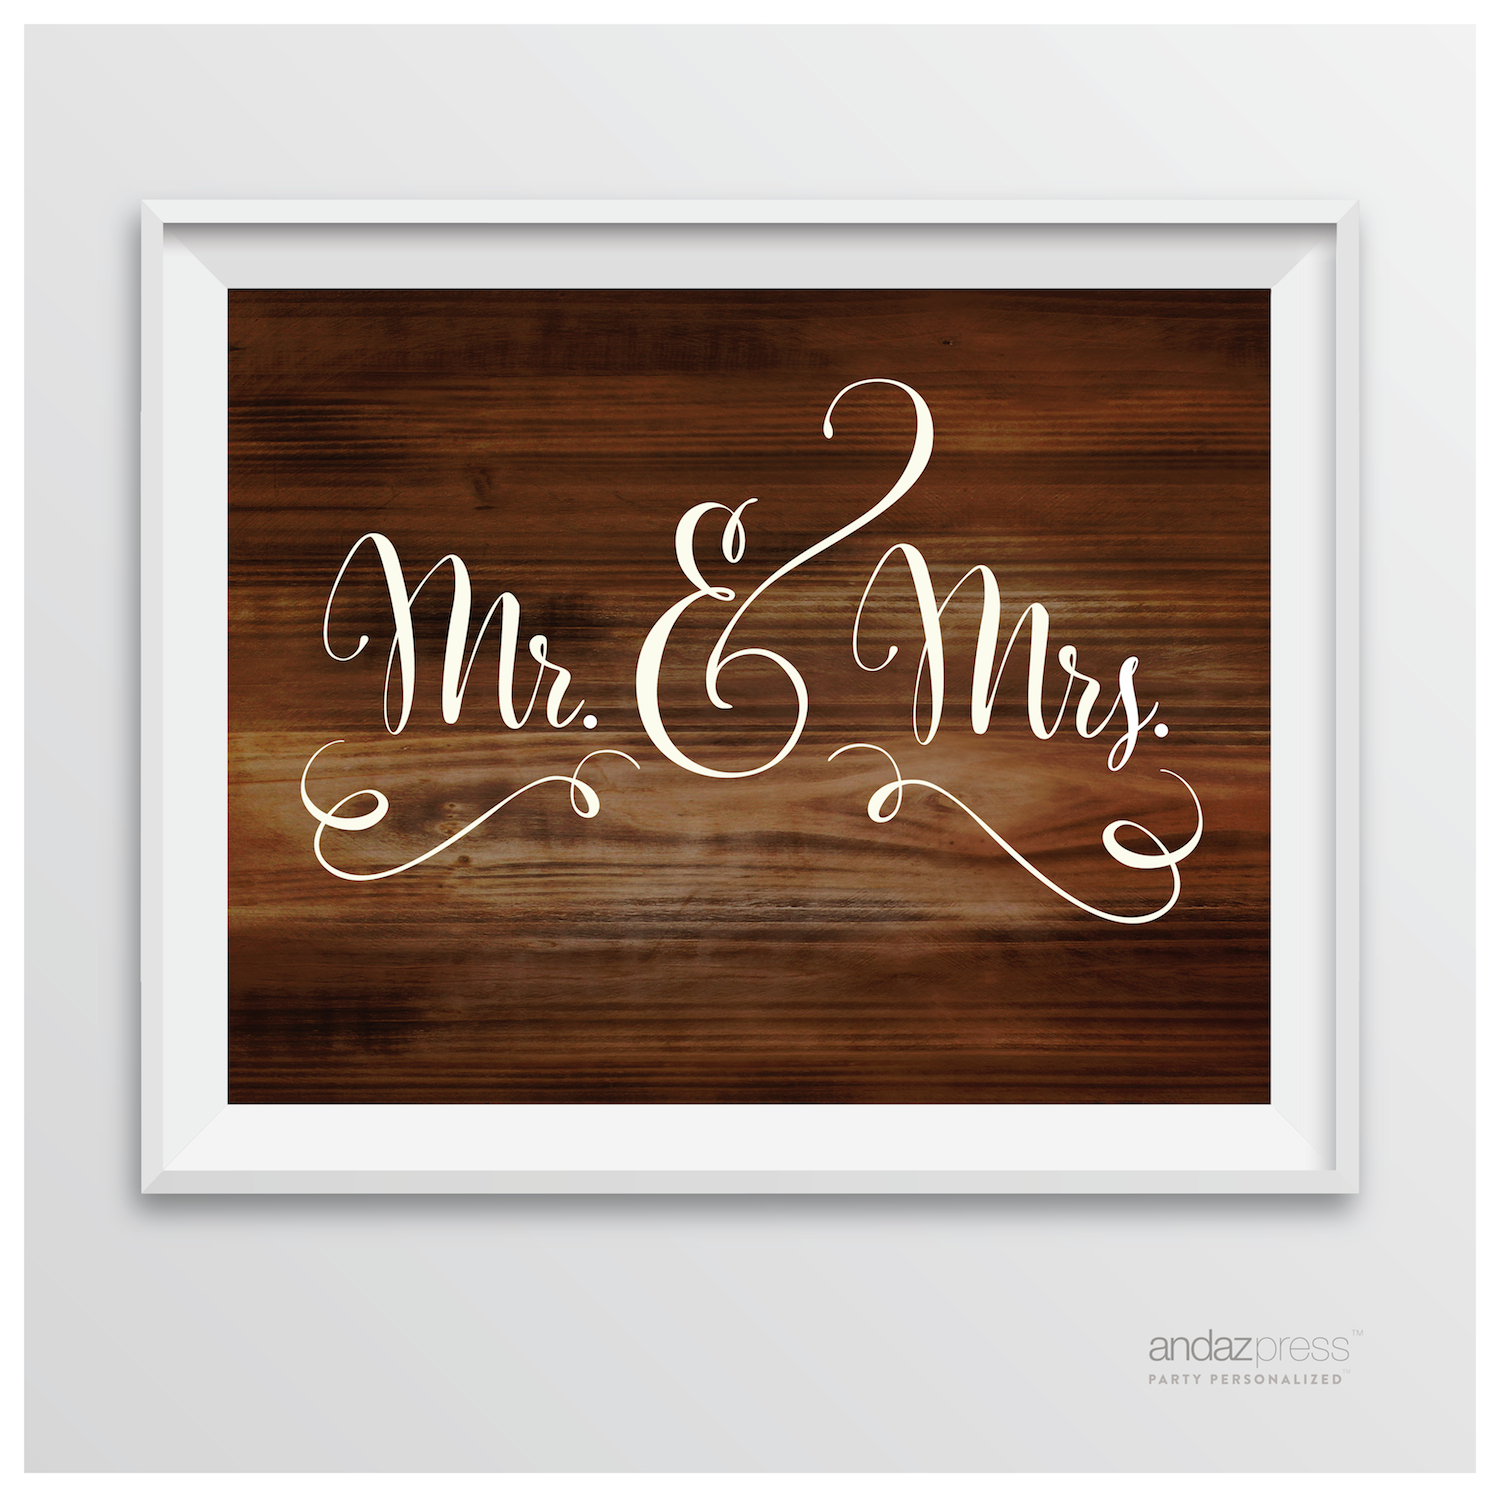 Mr. & Mrs. Rustic Wood Wedding Party Signs